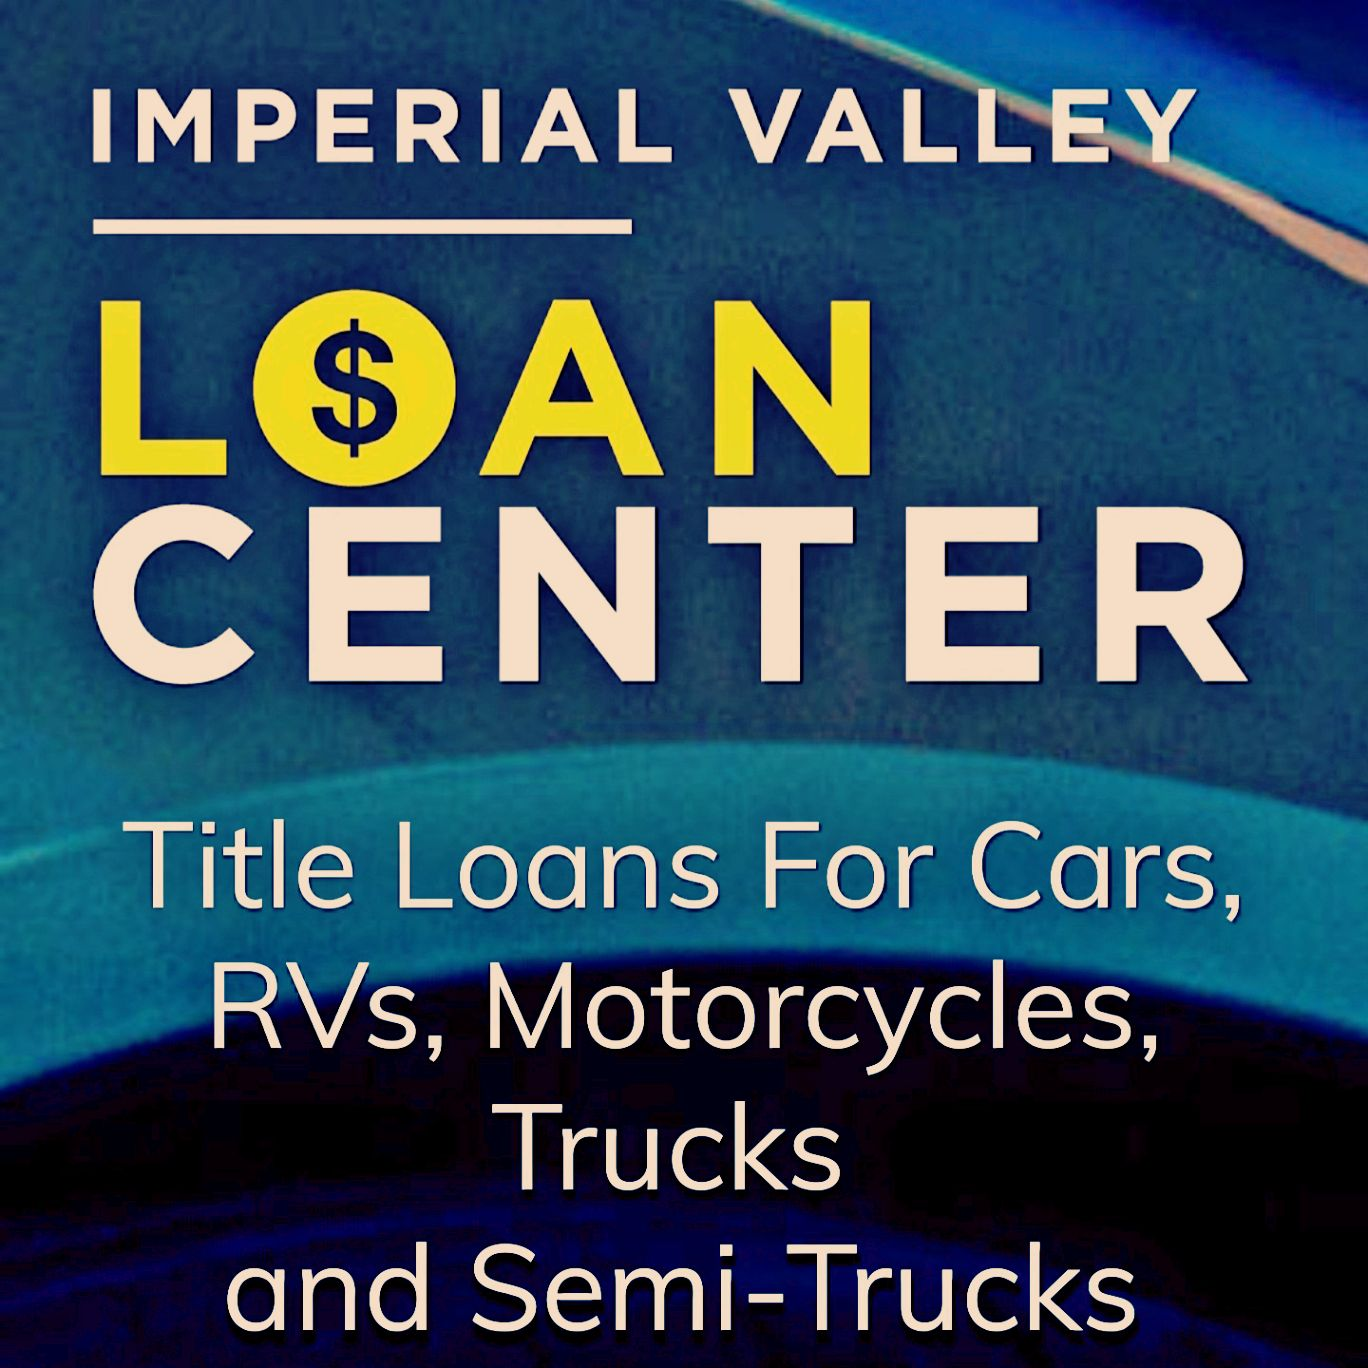 Imperial Valley Loan Center image 1